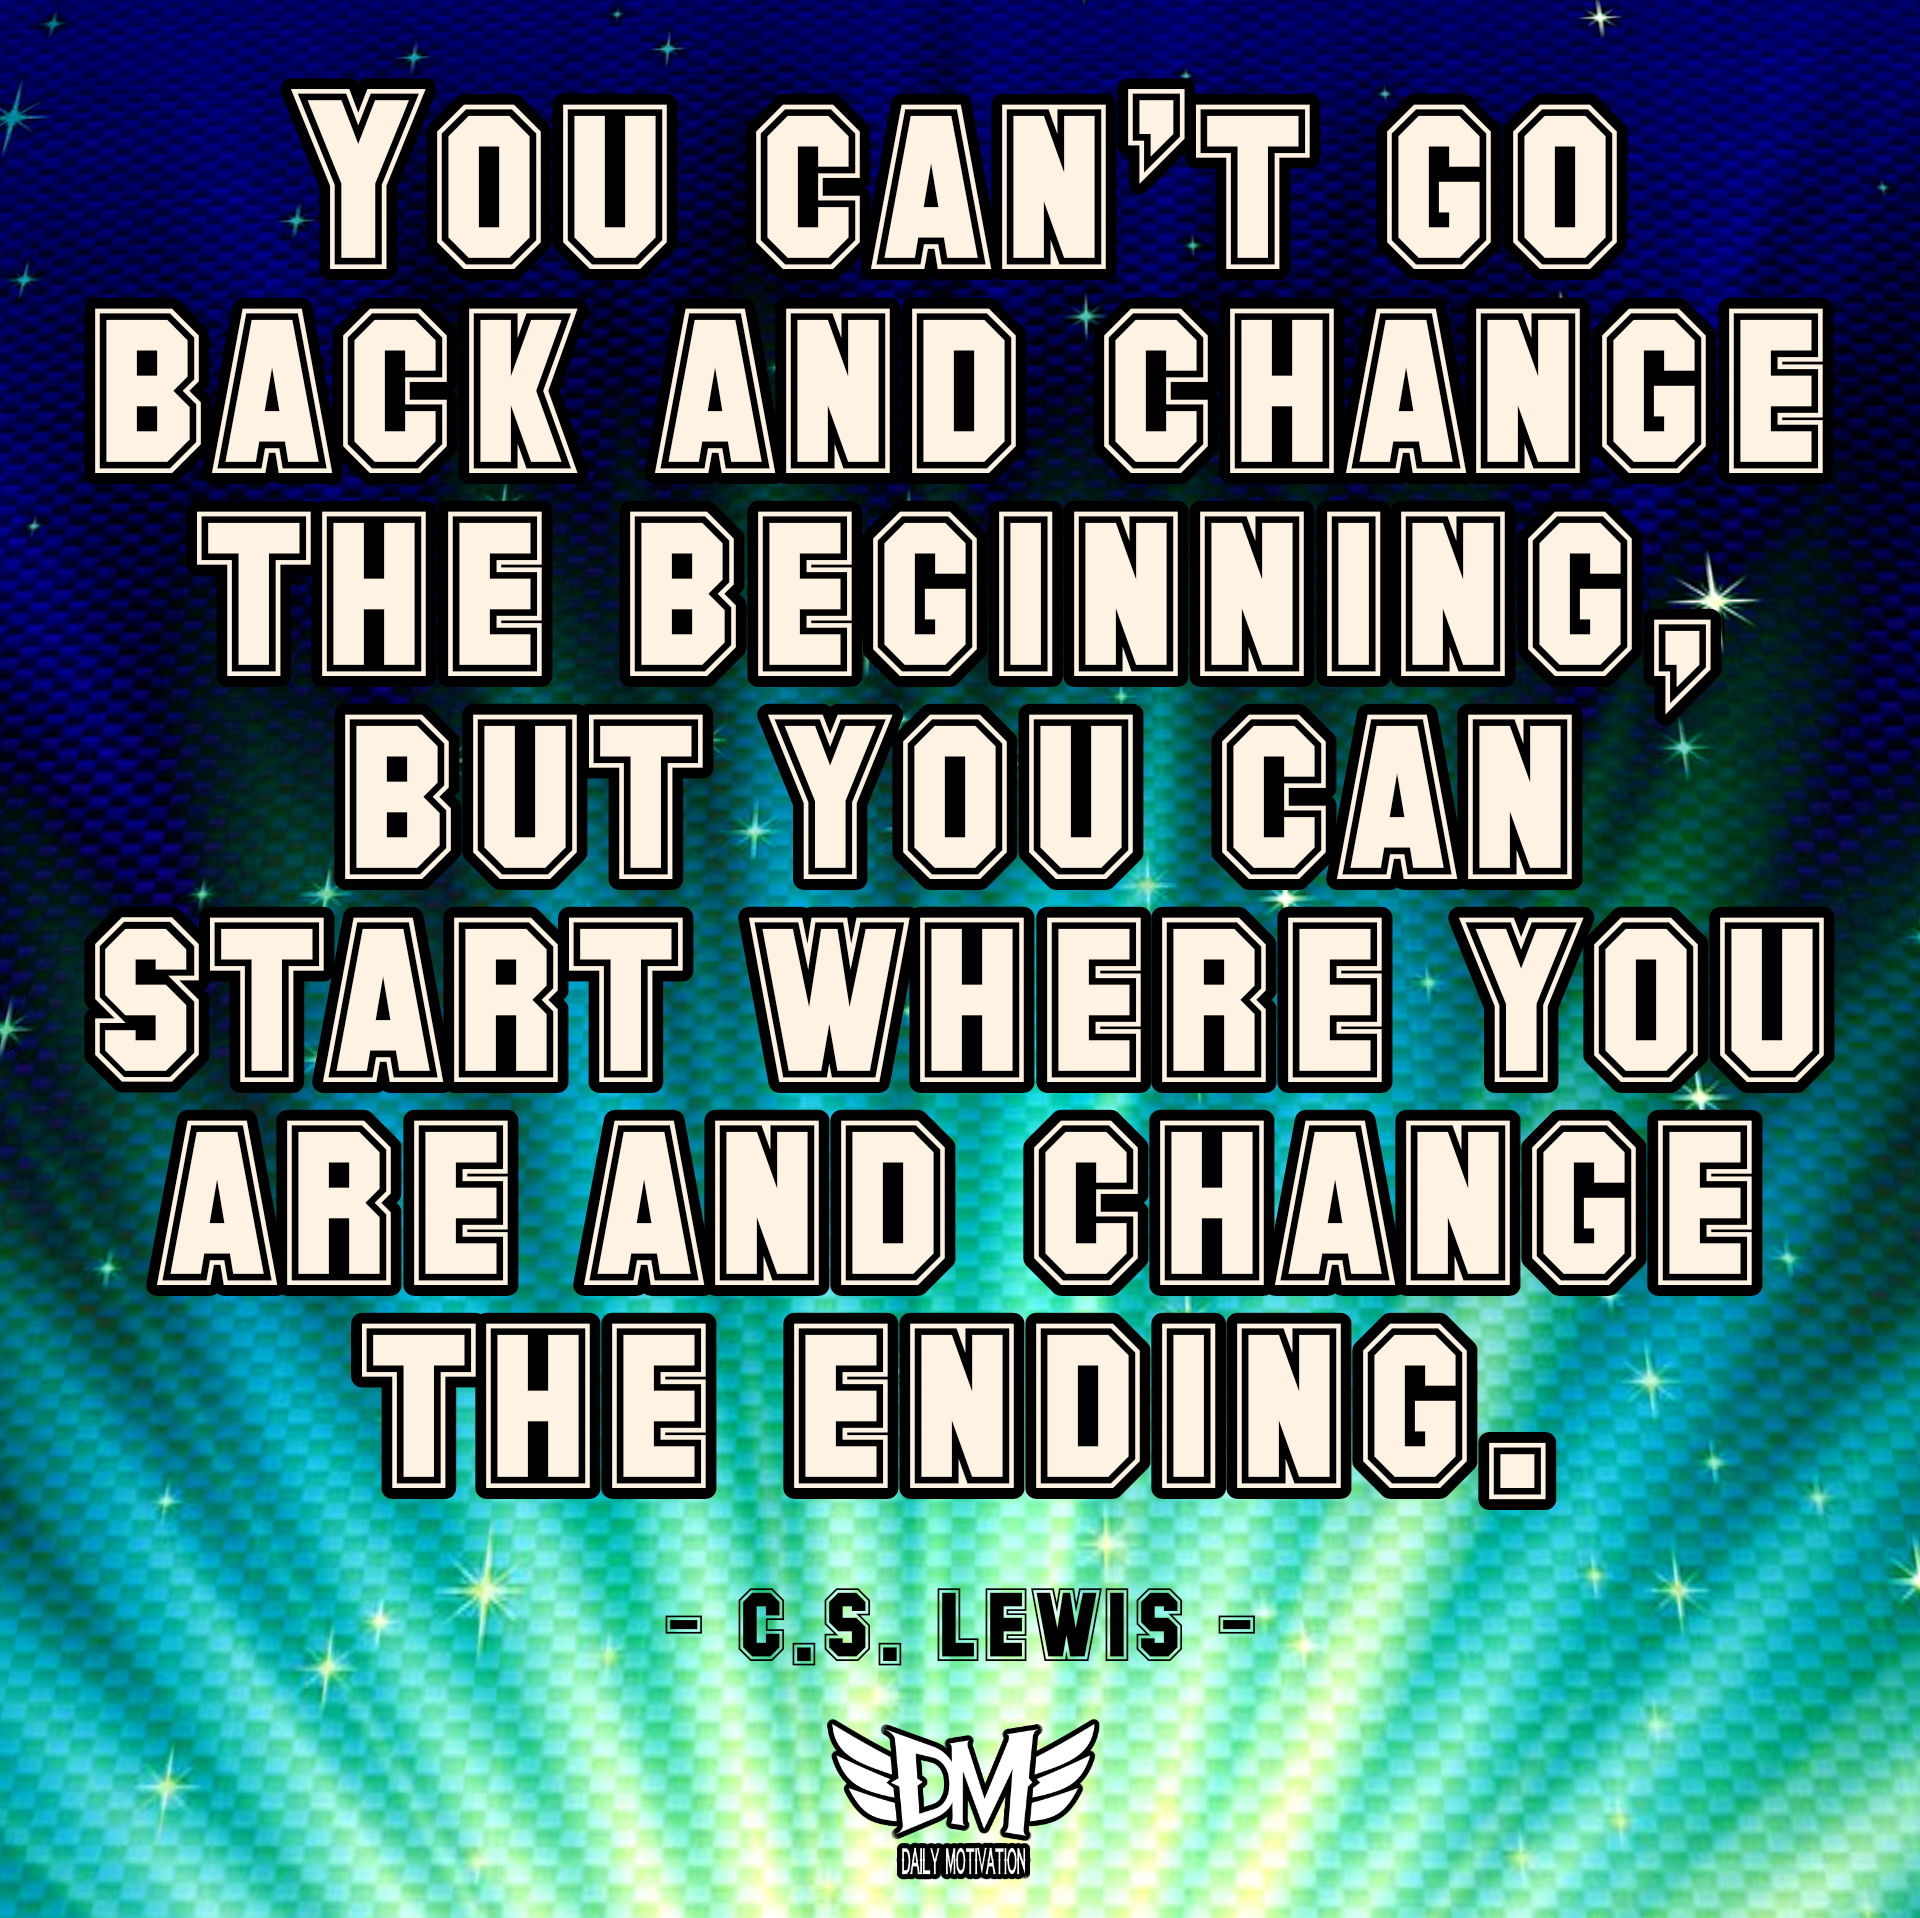 """You can't go back and change the beginning, but you can start where you are and change the ending."" – C.S. Lewis [1920 x 1918]"